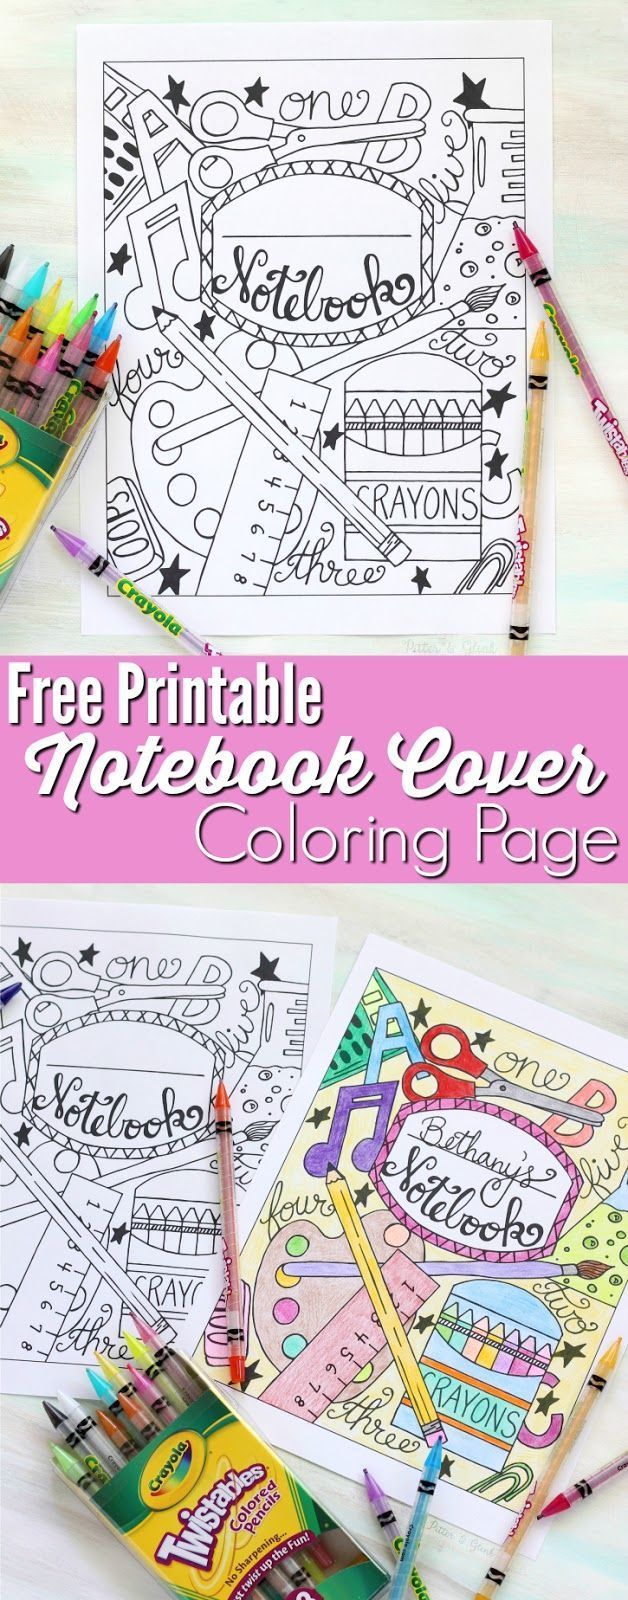 Nico the unicorn coloring pages - Back To School Notebook Cover Printable Coloring Page This Printable Coloring Page Is